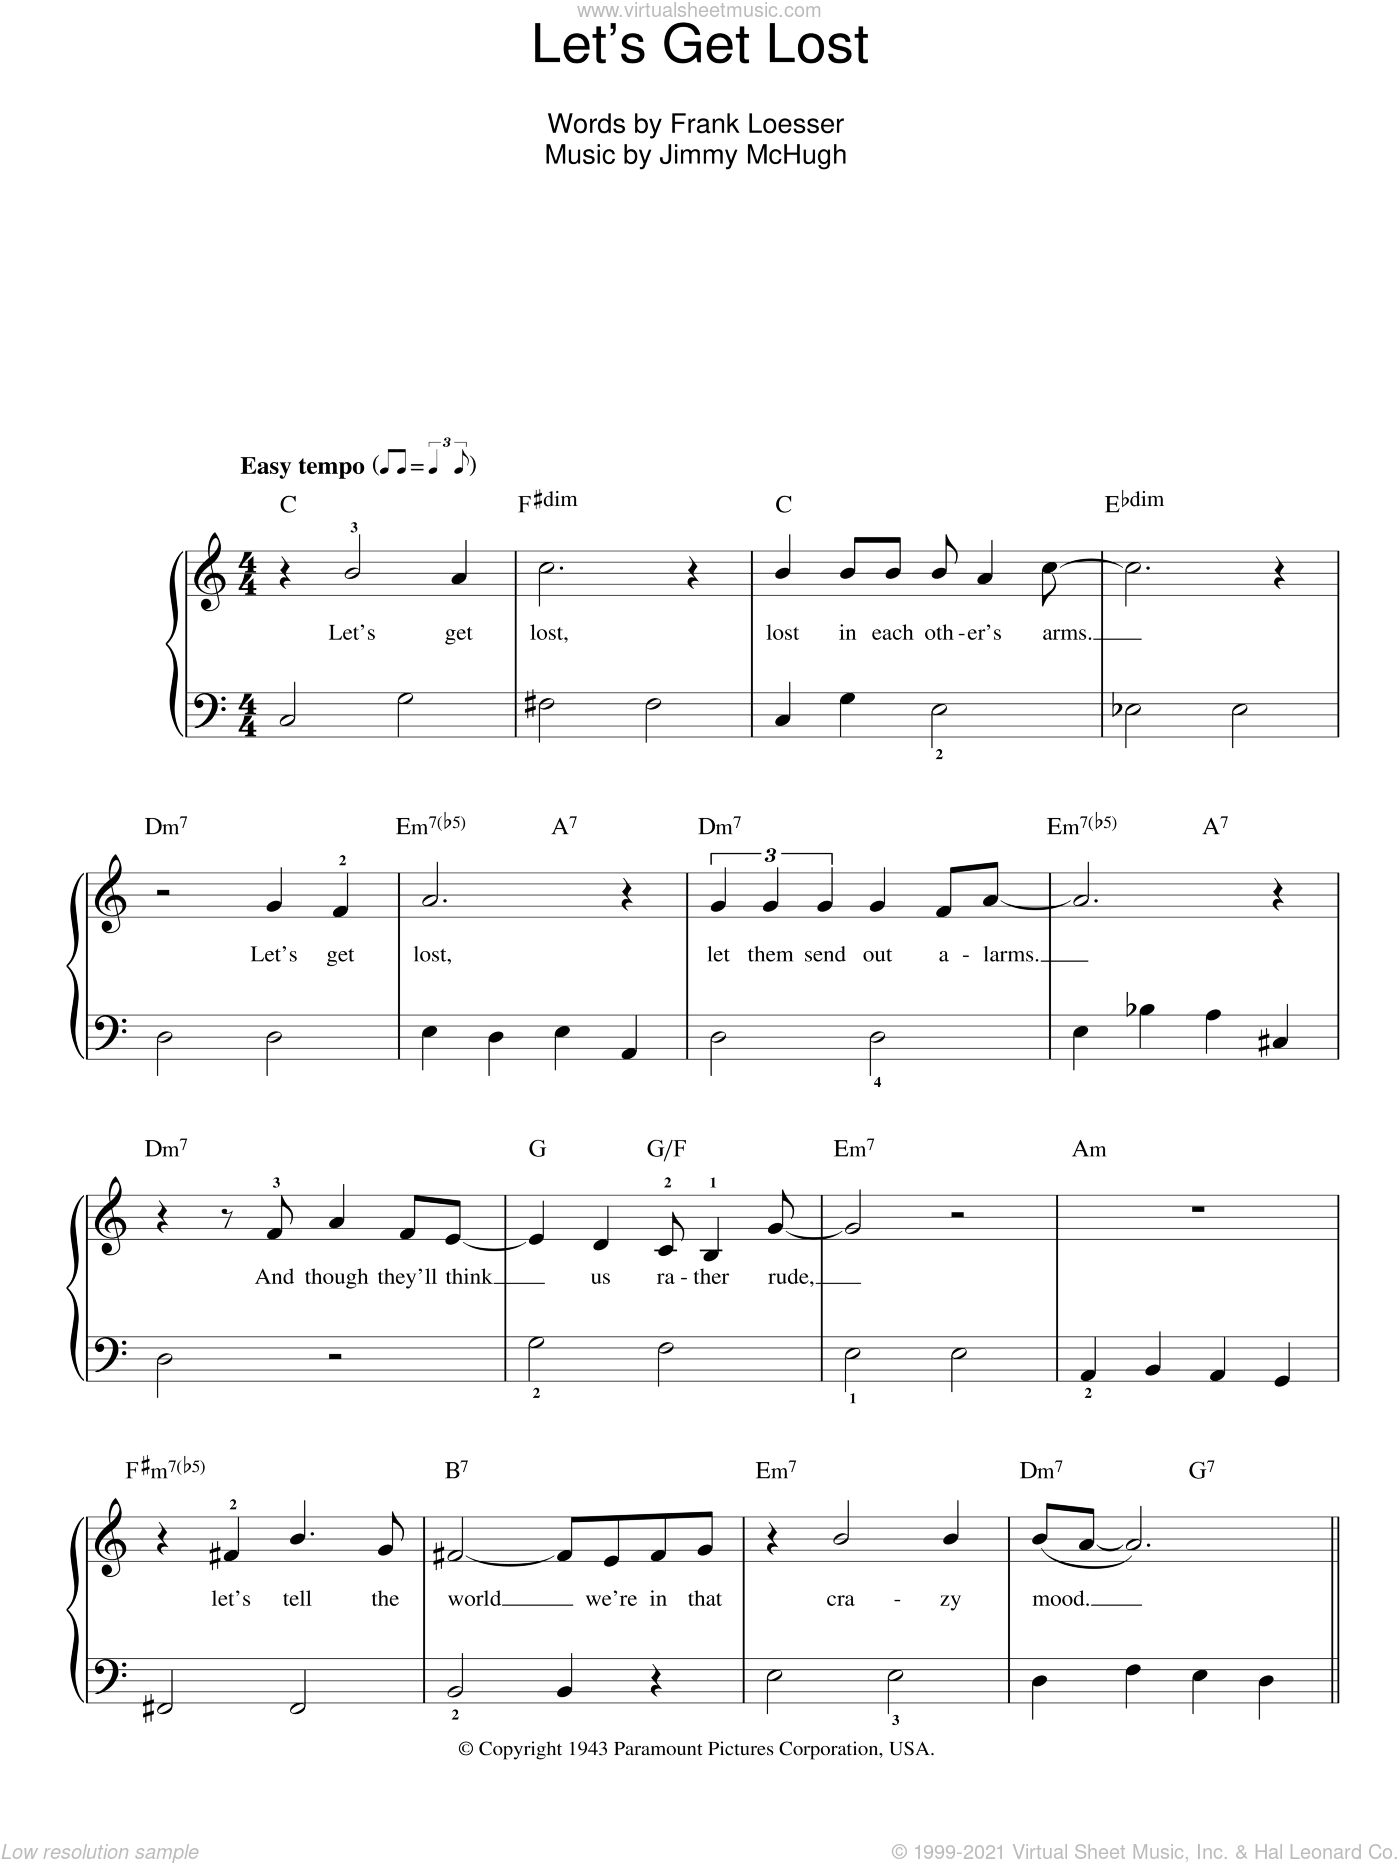 Let's Get Lost sheet music for piano solo (chords) by Jimmy McHugh